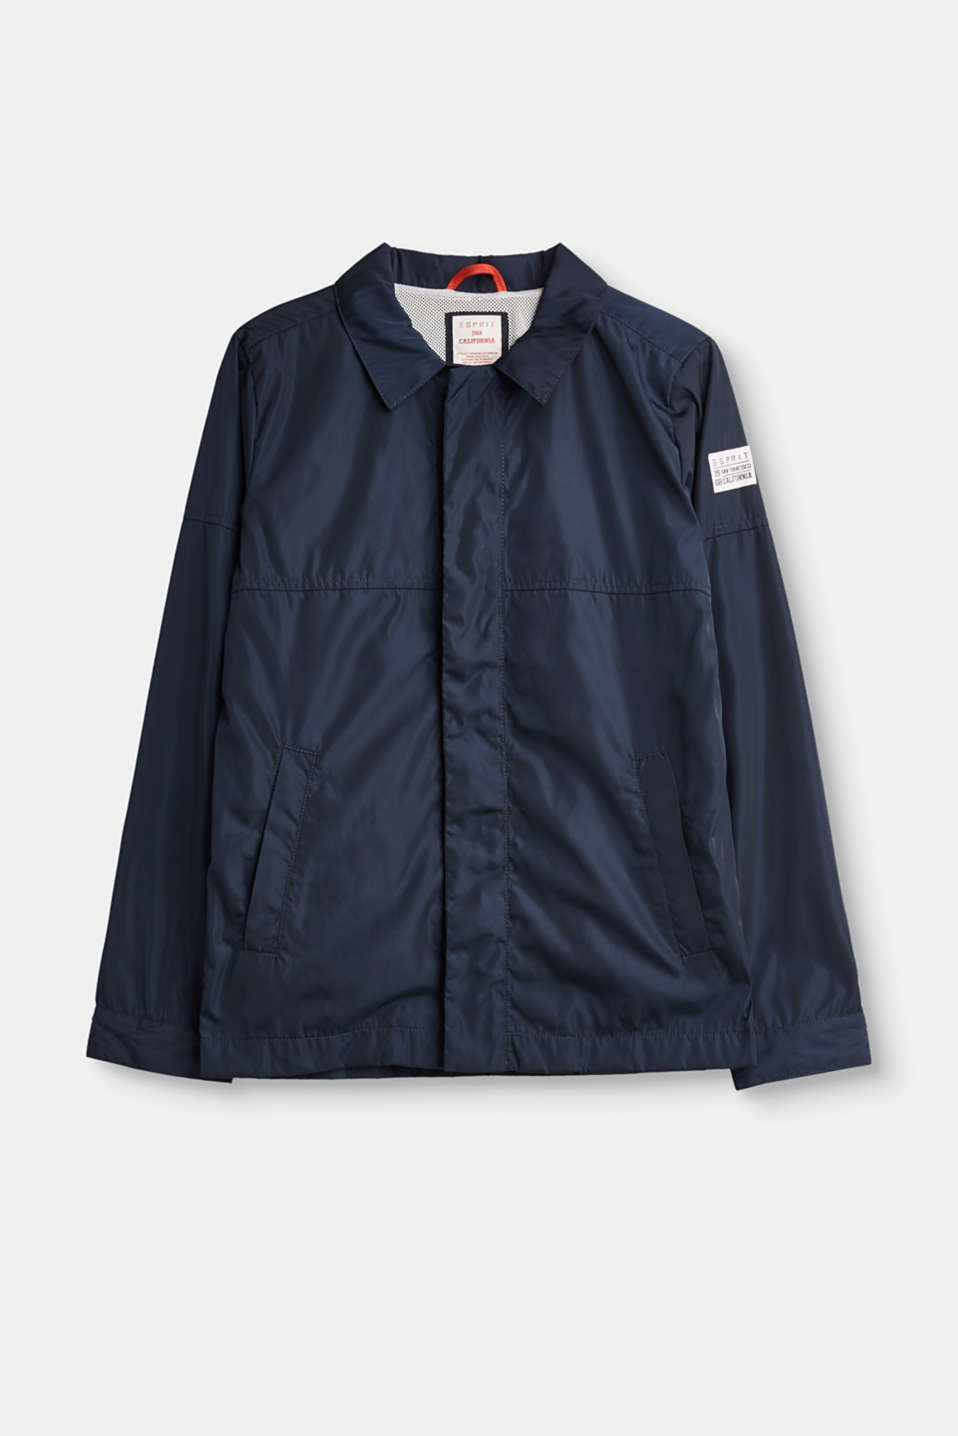 Esprit - Lightweight jacket with mesh lining